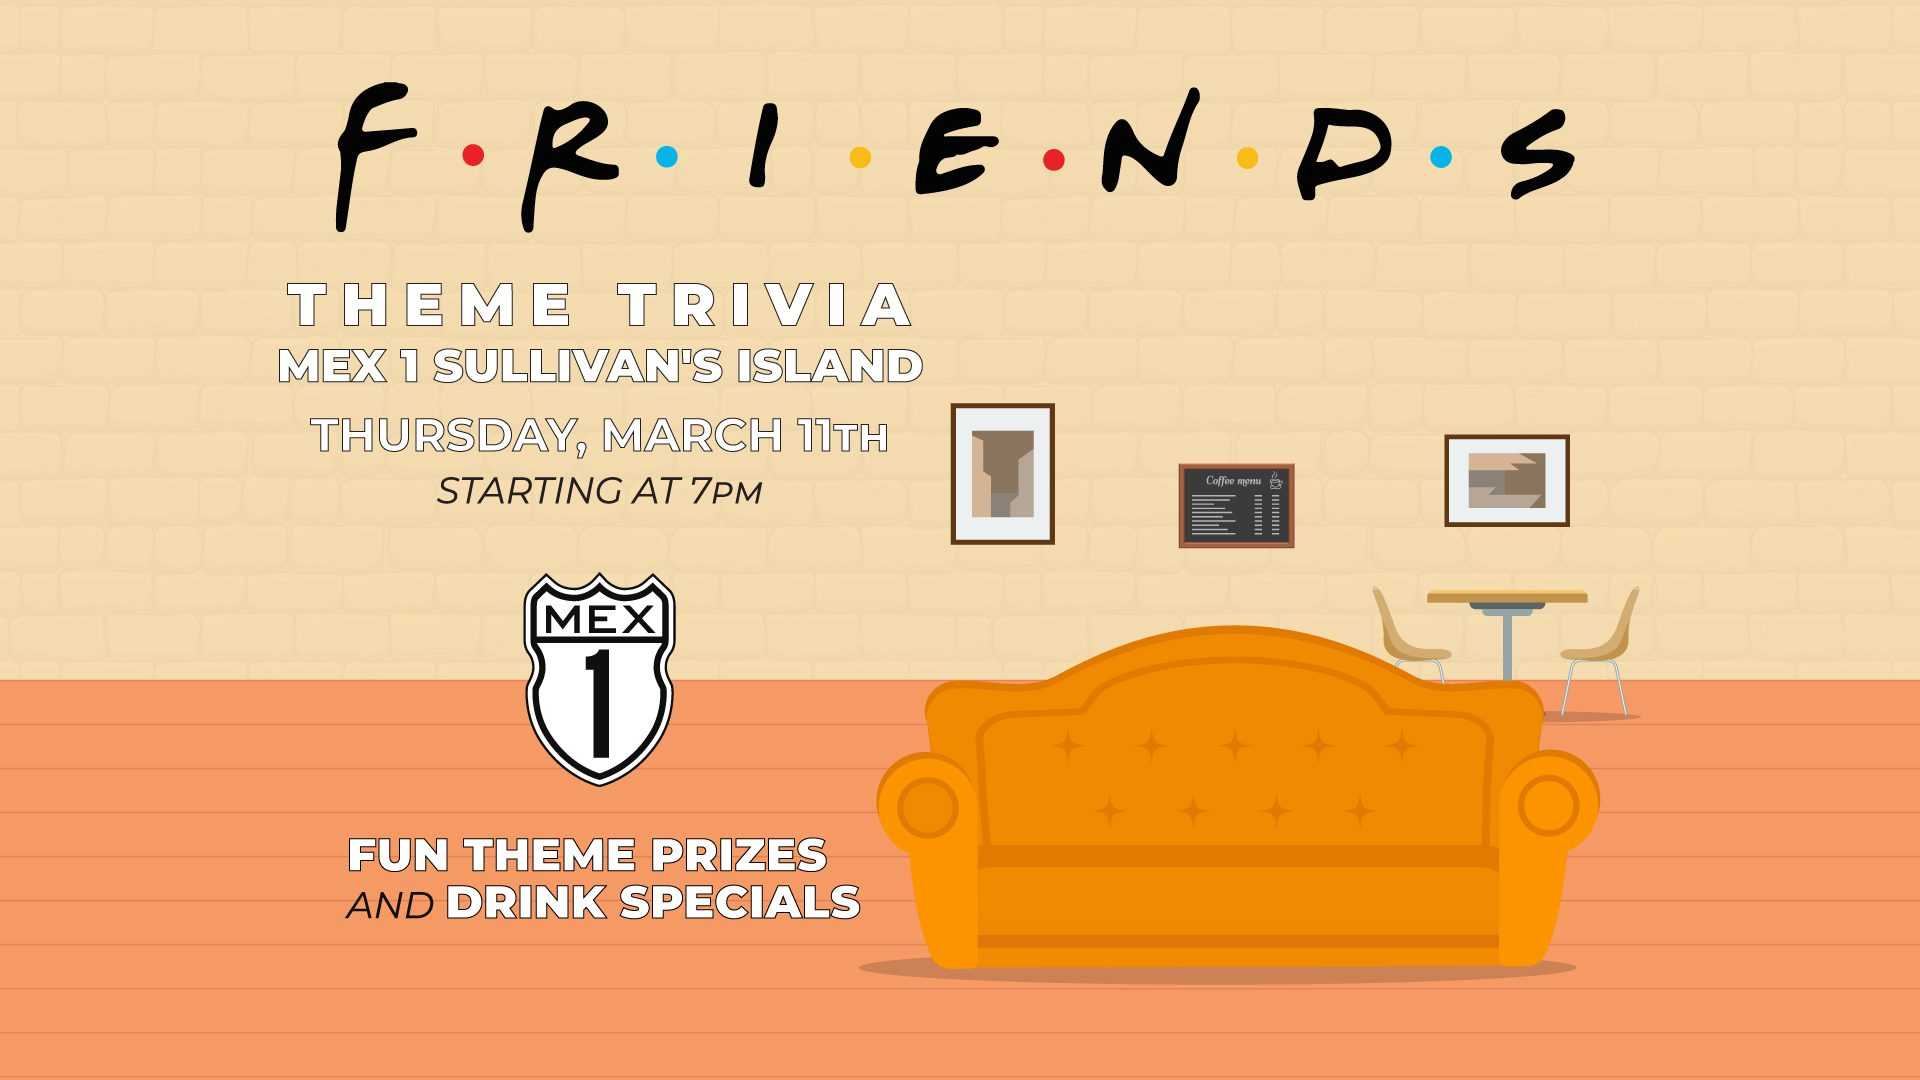 Friends Theme Trivia Night at Mex 1 Sullivan's Island Thursday, March 11th at 7pm